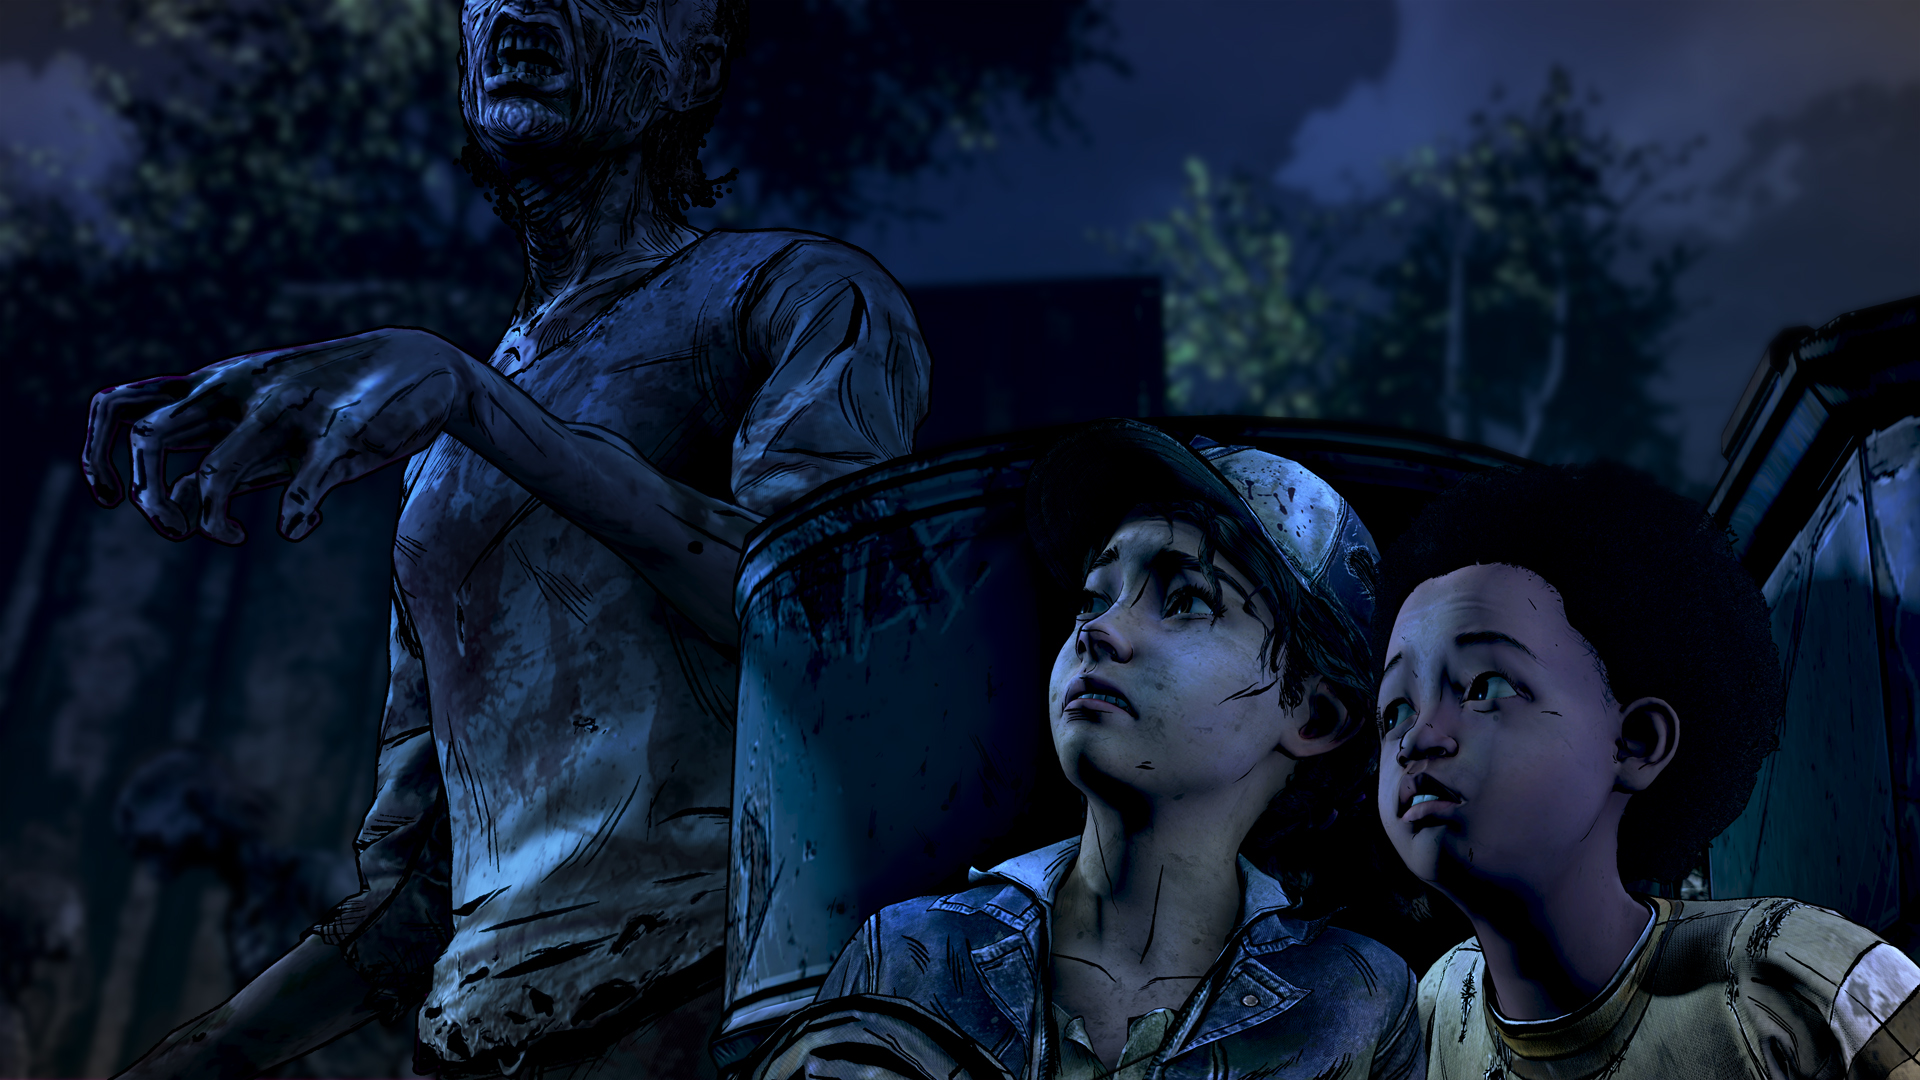 The Walking Dead: The Final Season - Clem & AJ